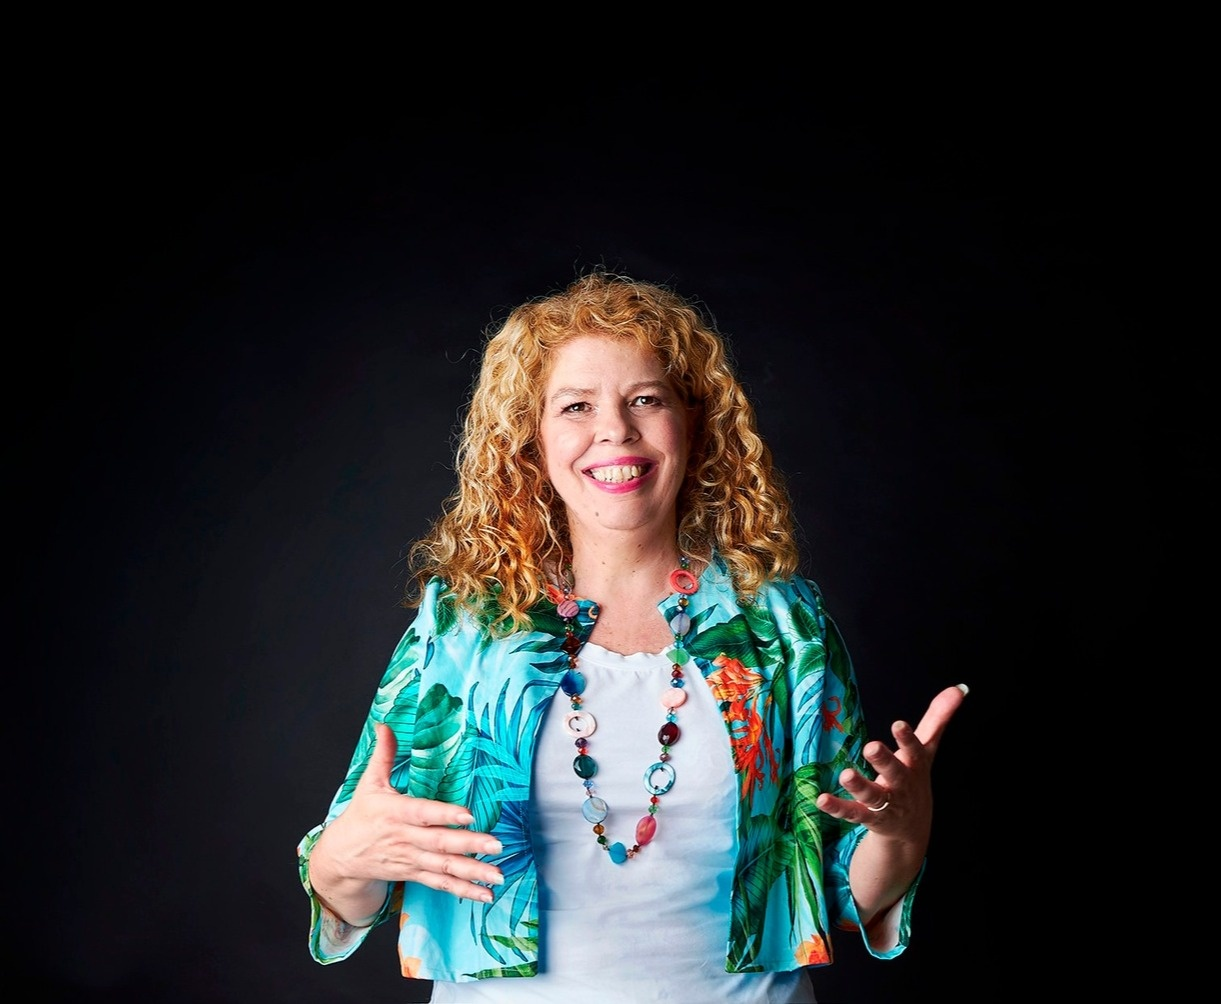 Hire a PMO Speaker for your next company event - Elise Stevens